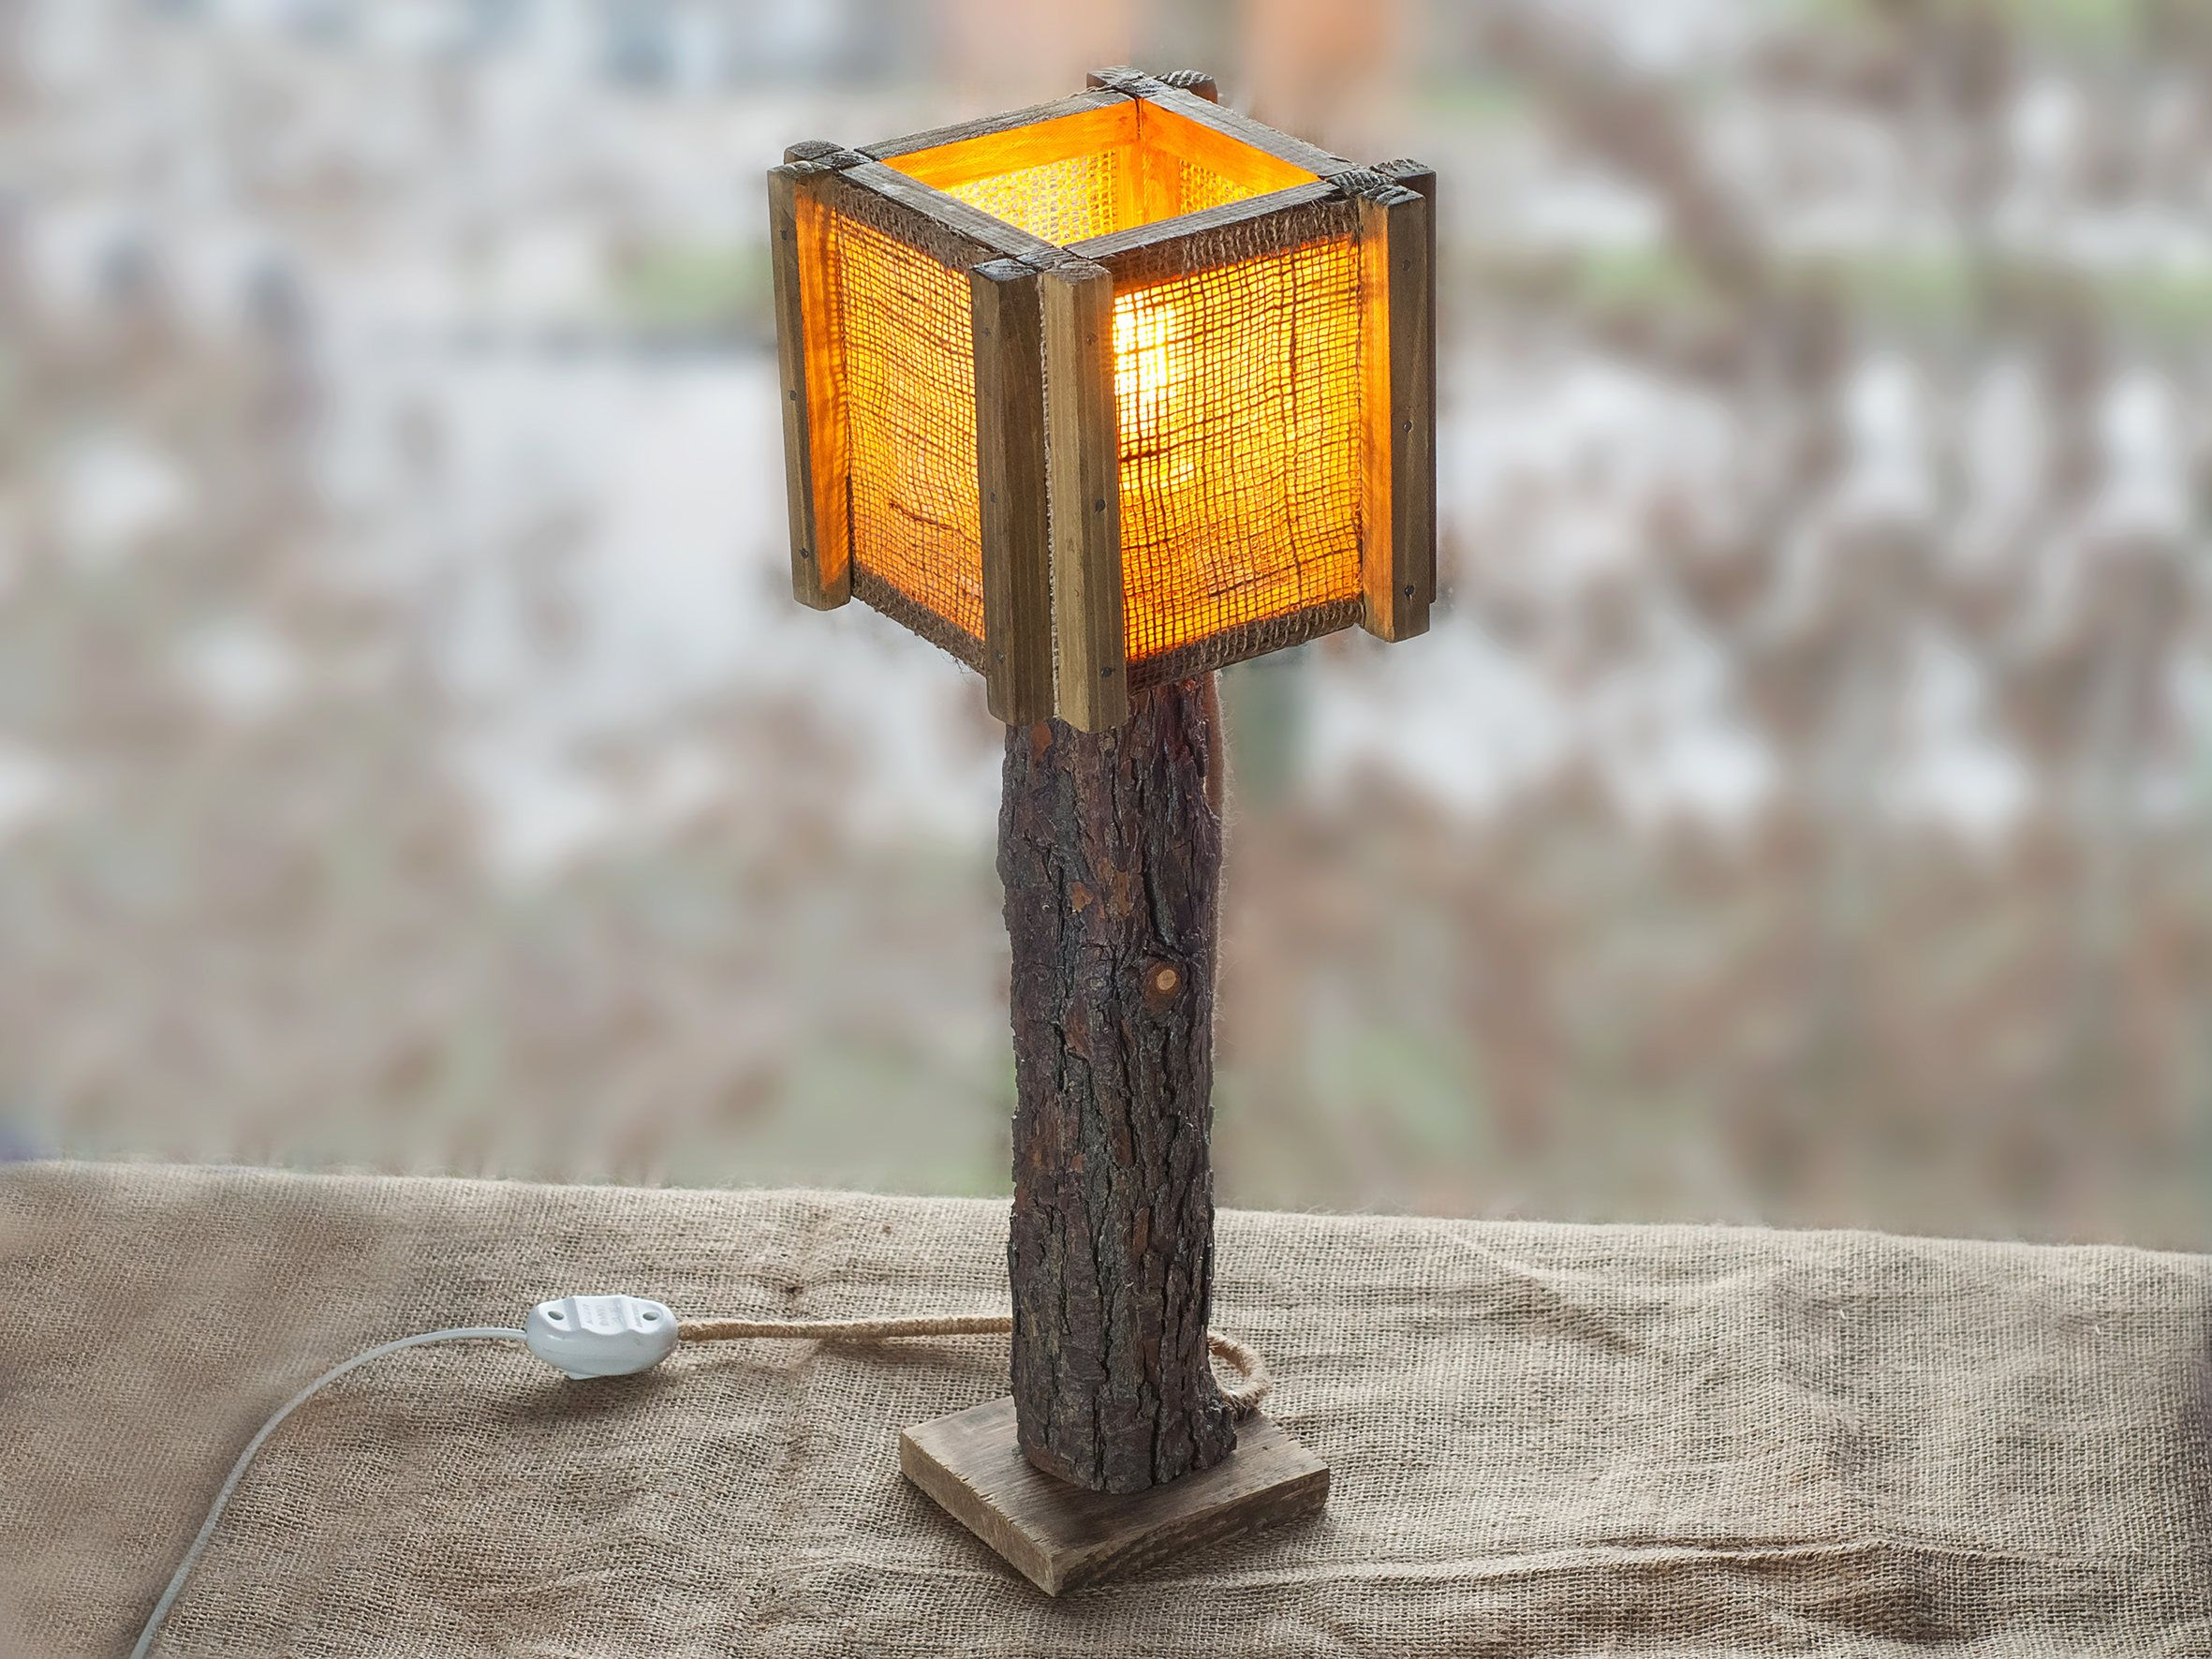 Burlap table lamp woodlamp driftwood lamp lamps lampshades burlap table lamp woodlamp driftwood lamp lamps lampshades burlap aloadofball Image collections